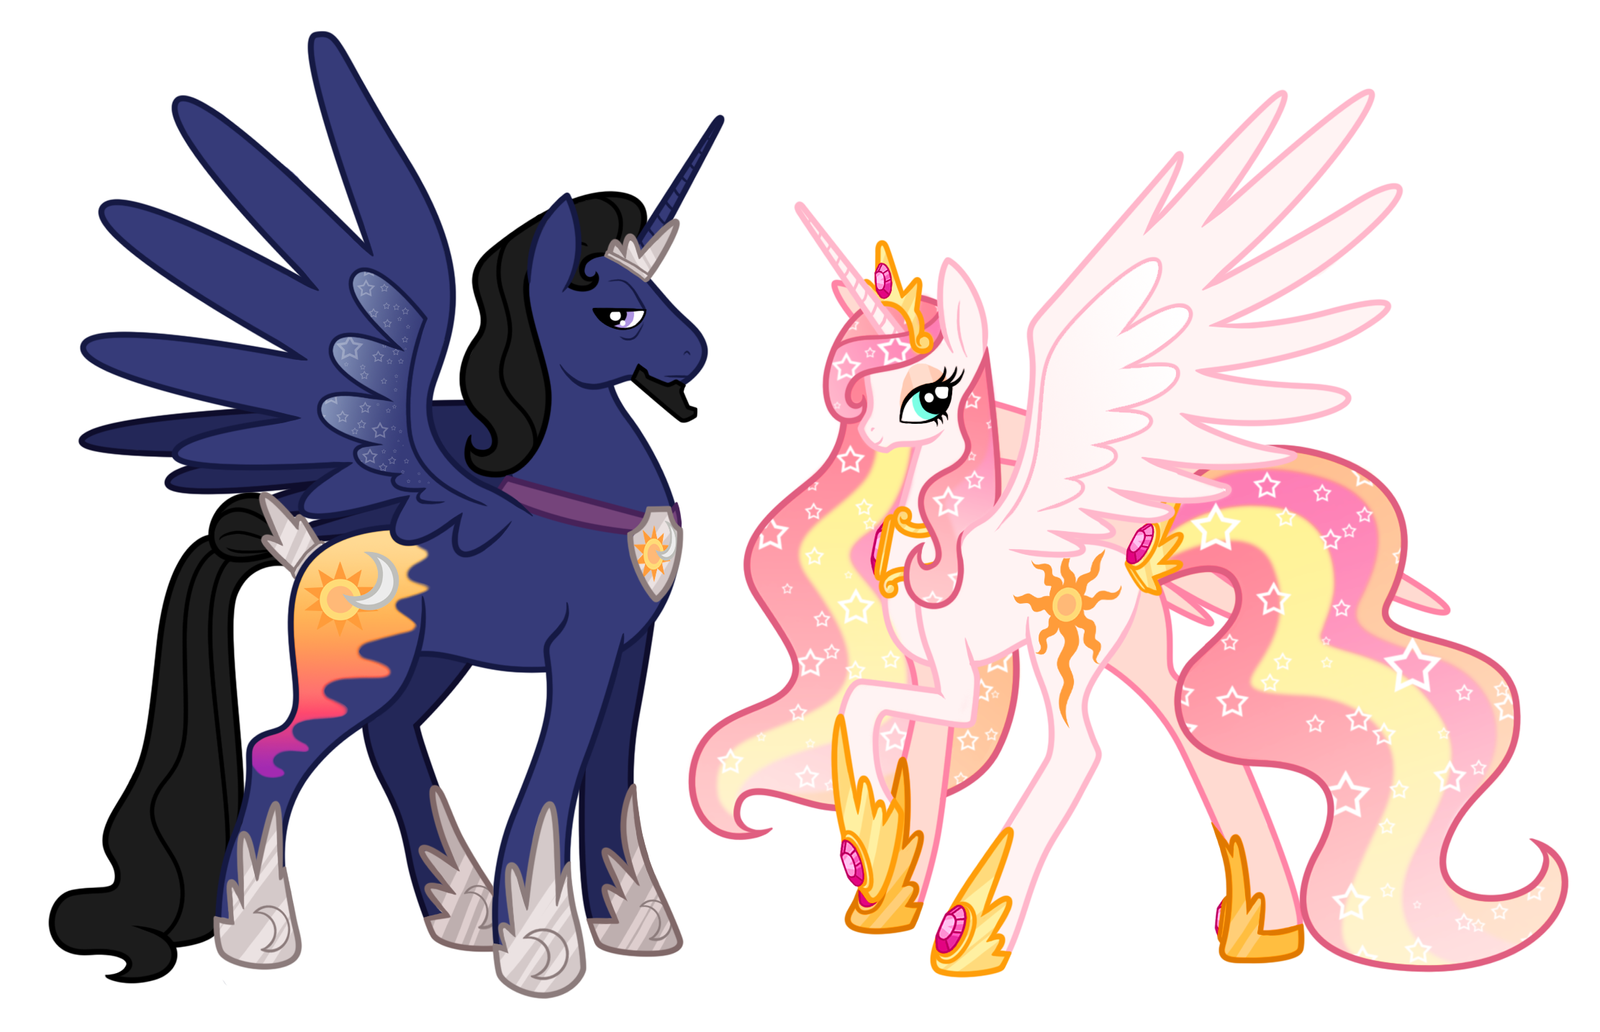 King And Queen Of Equestria By Alexkingofthedamned On